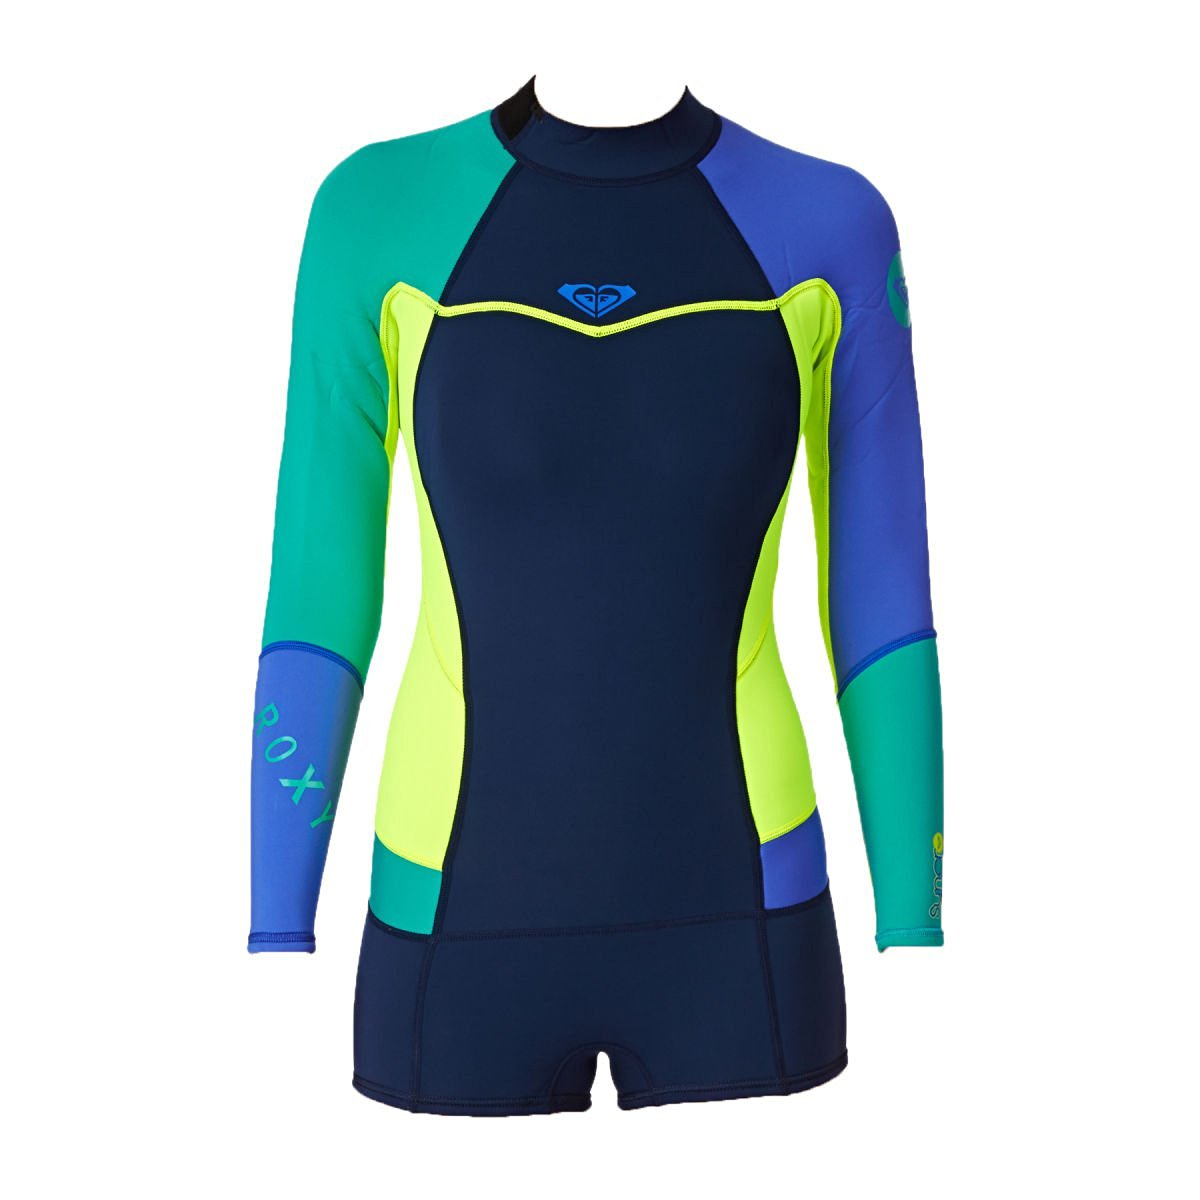 a299995417 Get Quotations · Roxy Syncro Booty Cut Springsuit Womens Long Sleeve Wetsuit  LIMITED EDITION - Navy Lemon